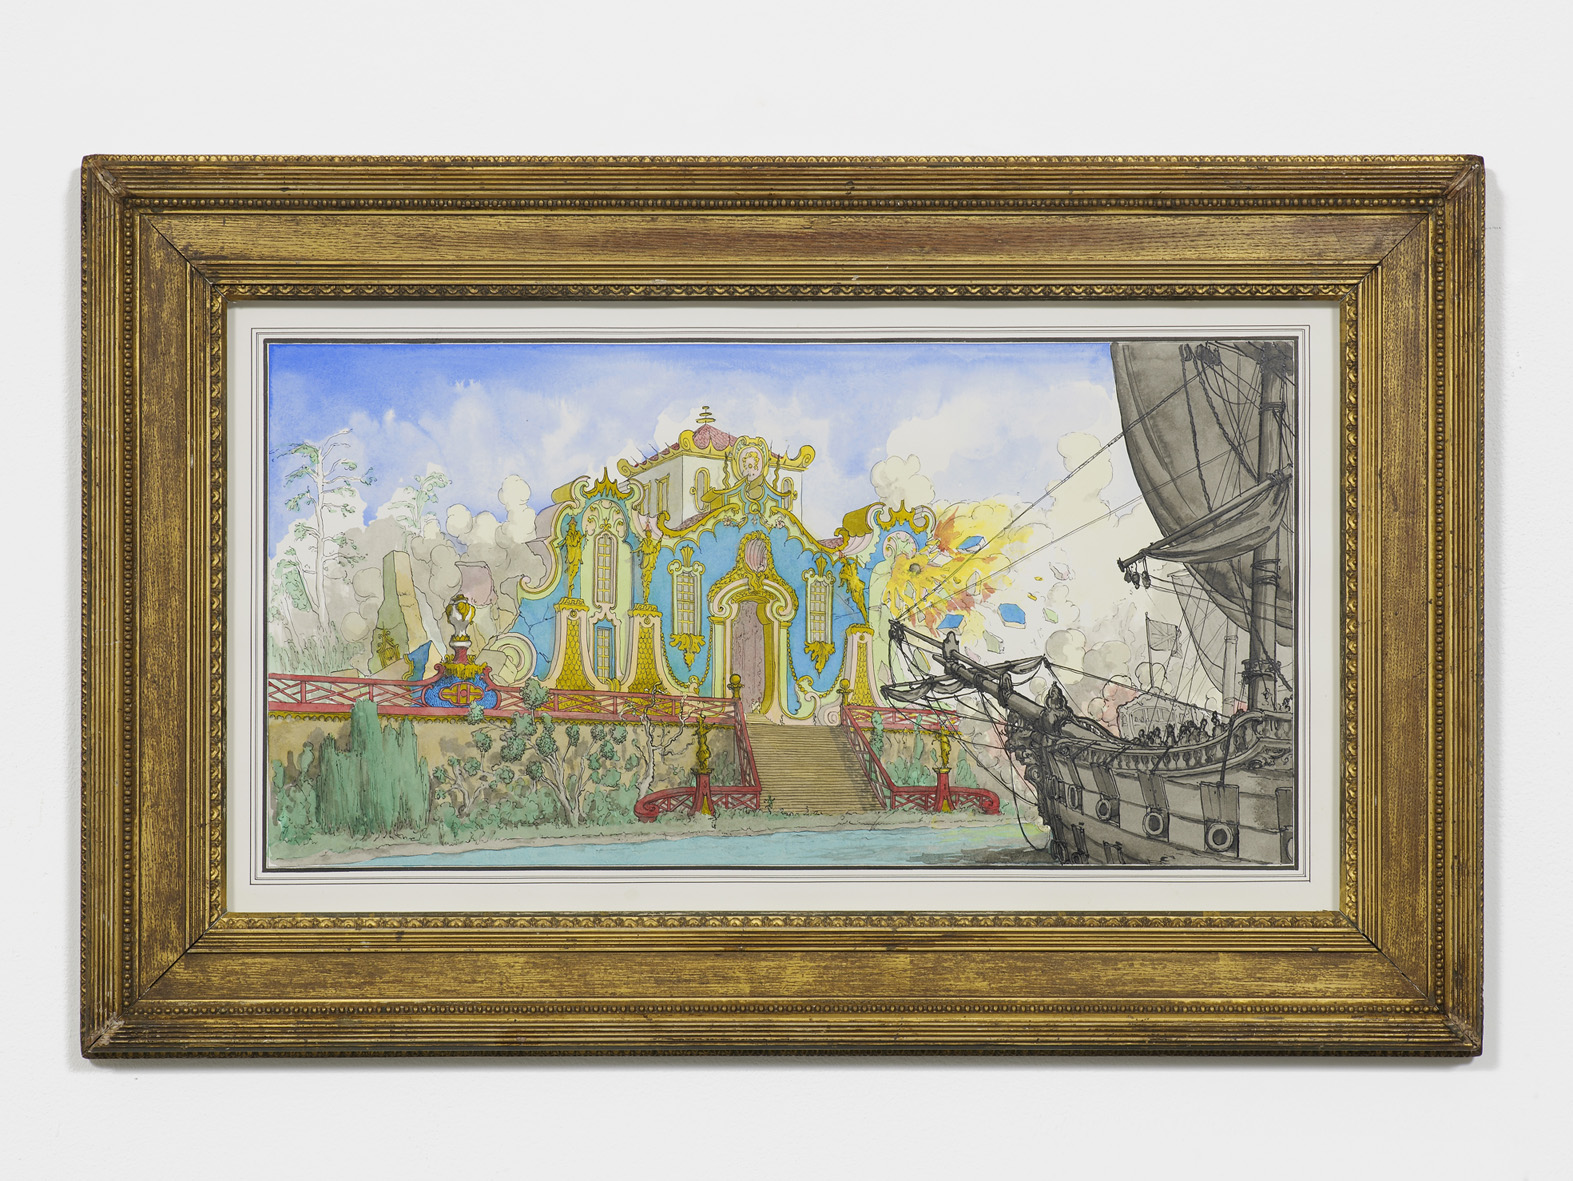 The Old Qianlong Summer Palace bombarded by the English and French fleet, 1860 2016 Ink and watercolour on paper in artist's frame 45.9 x 71.1 cm / 18 x 27.9 in